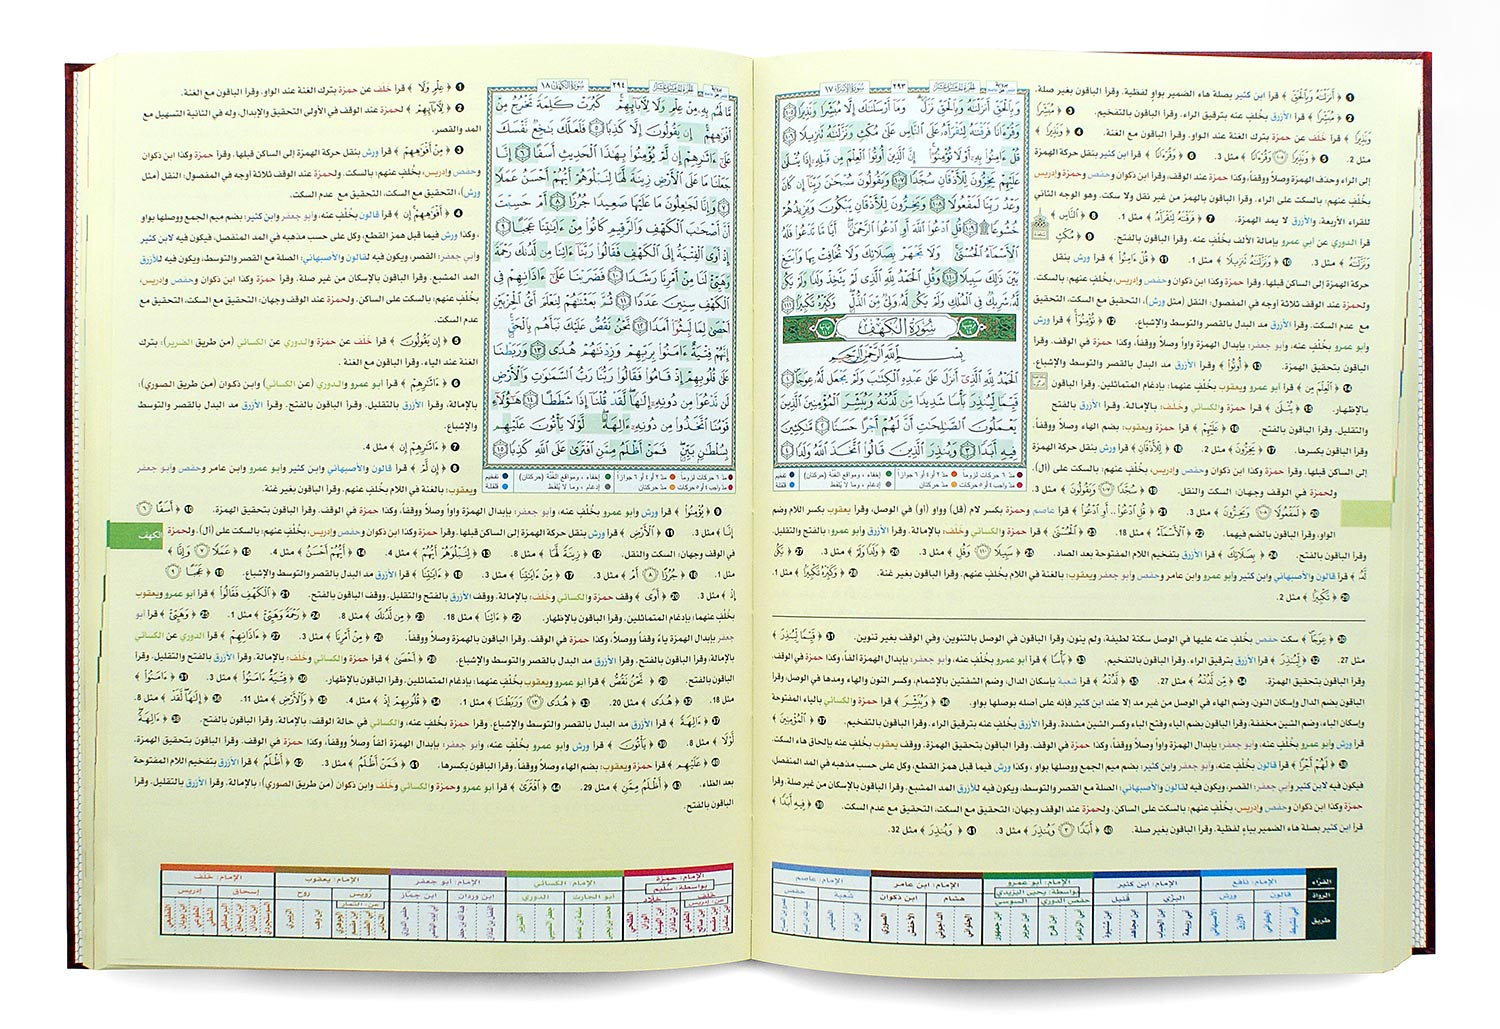 Tajweed Quran With The Ten Readings on the Margins